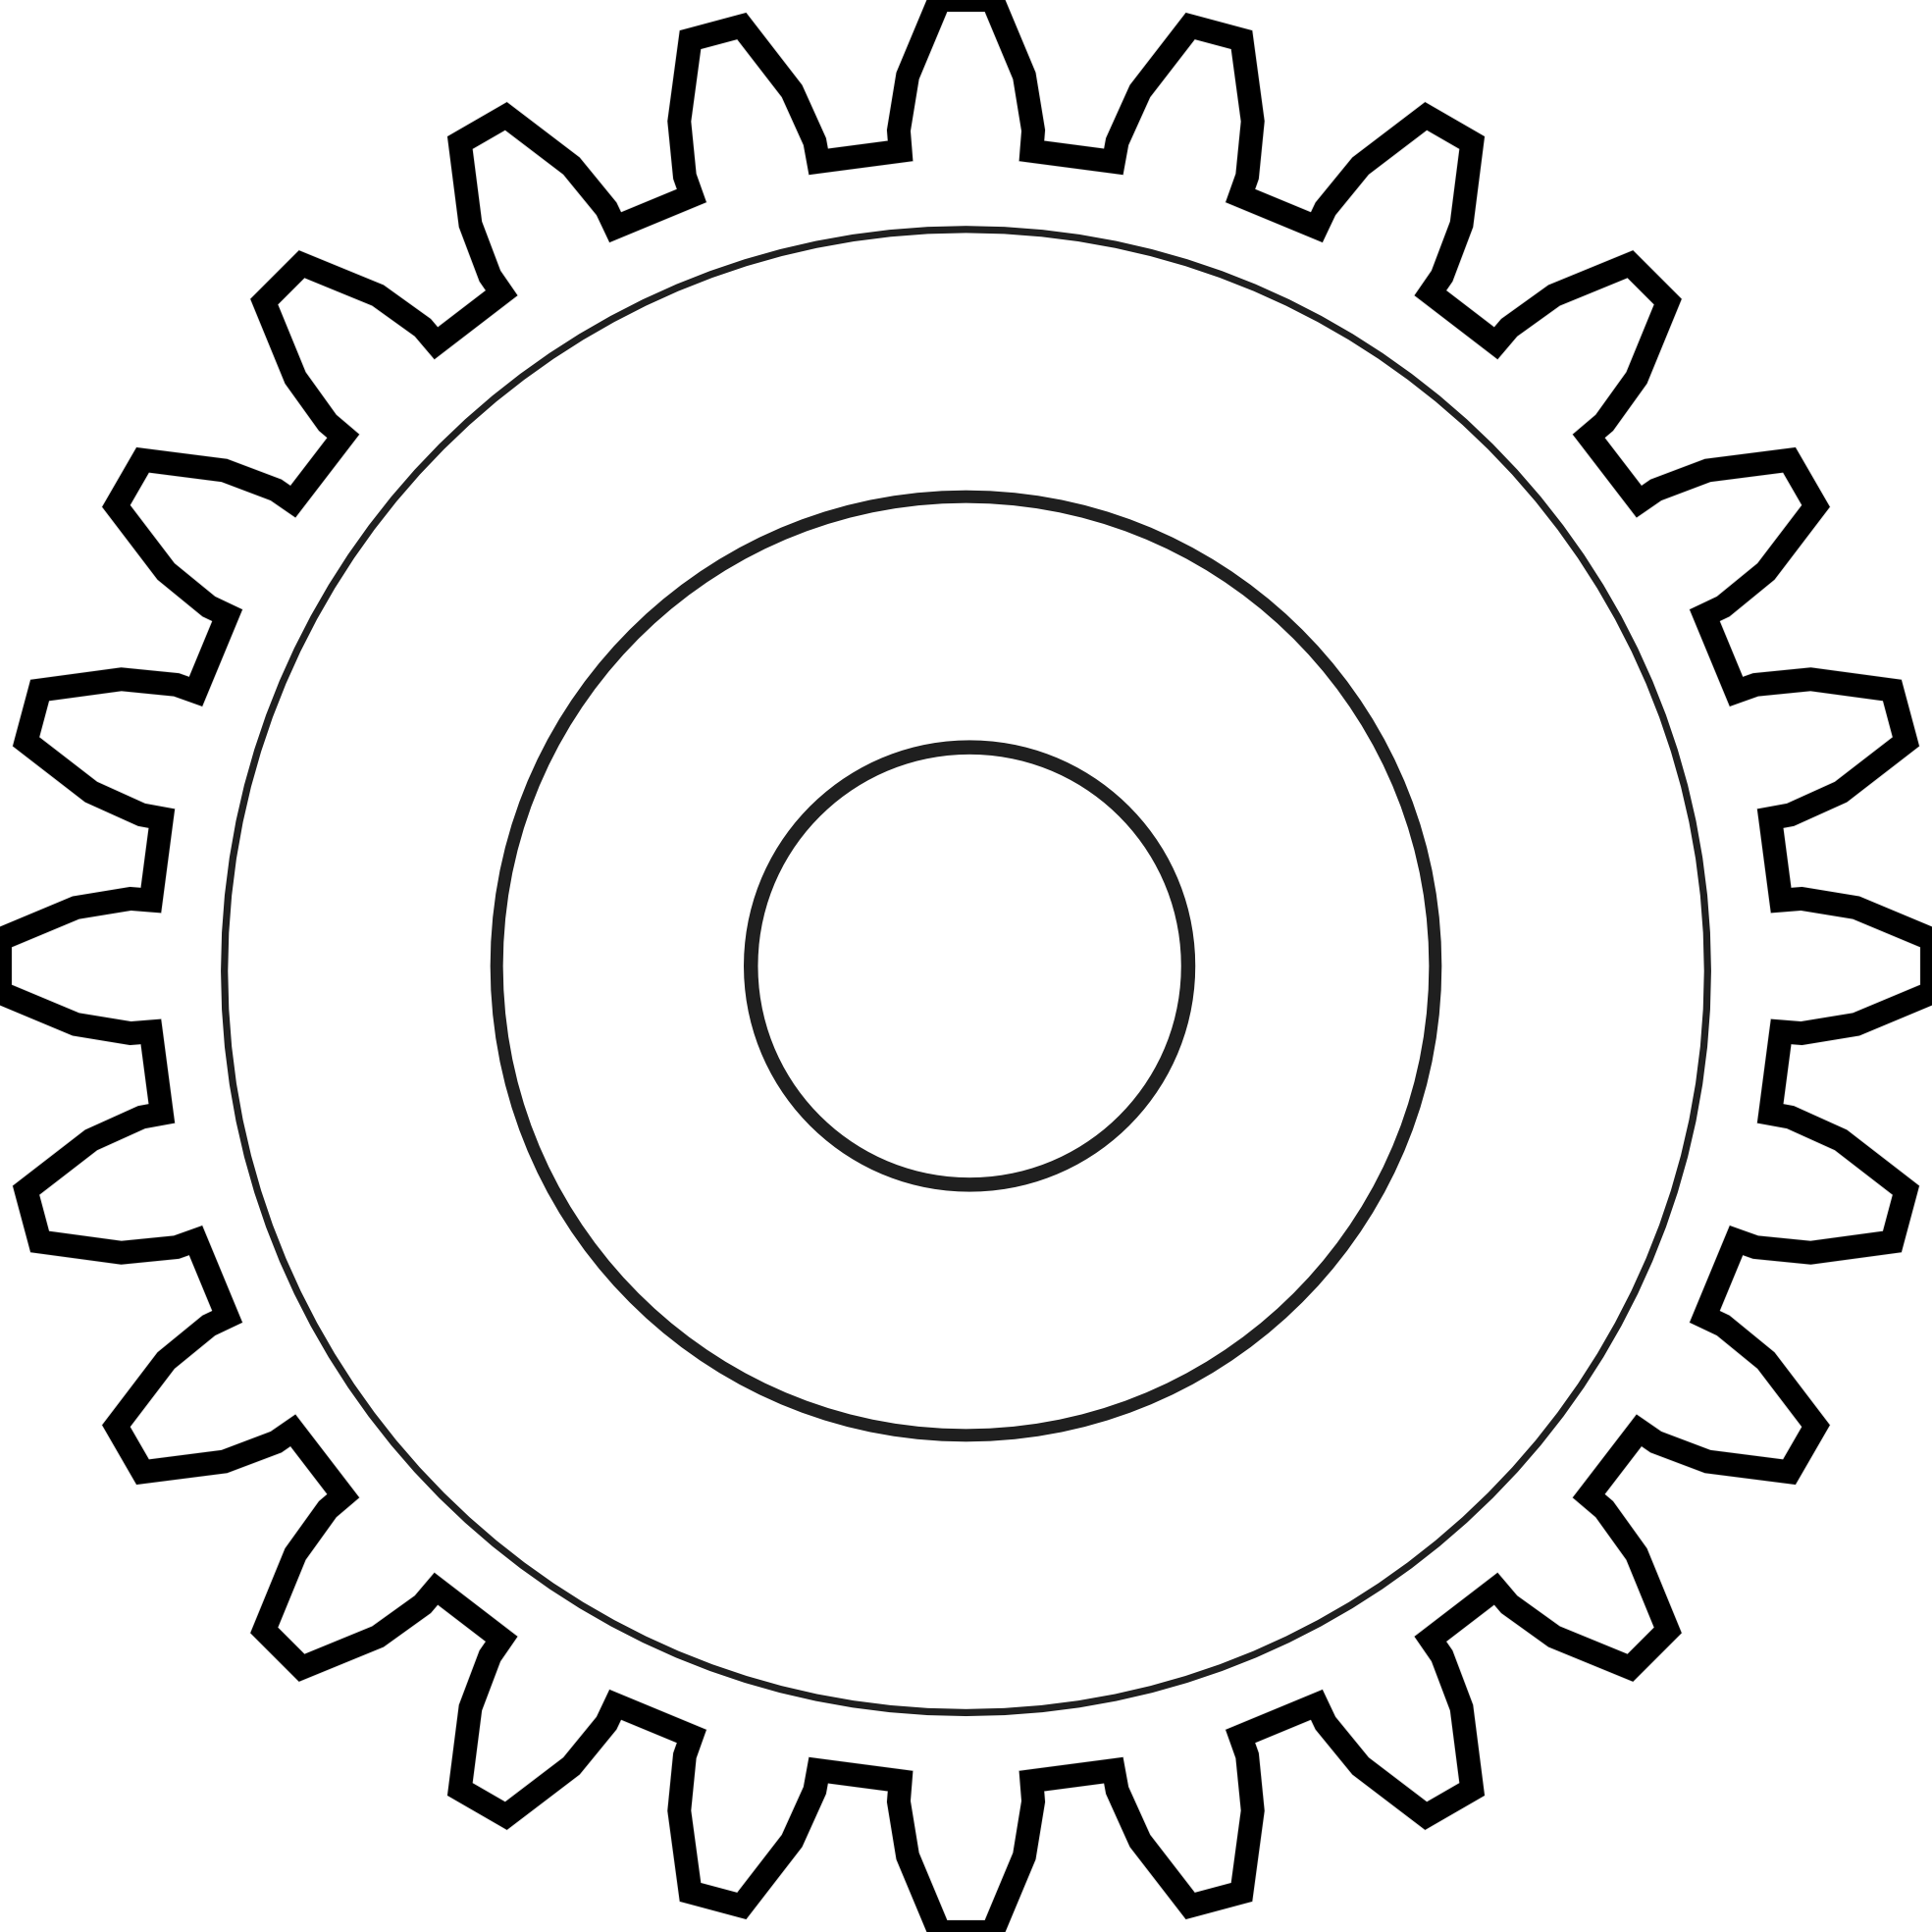 51 in addition Key chain addition i made to help curb the hype together with  also Gear Drawings besides Simple Clock Gears Drawing. on drawing a gear in inkscape